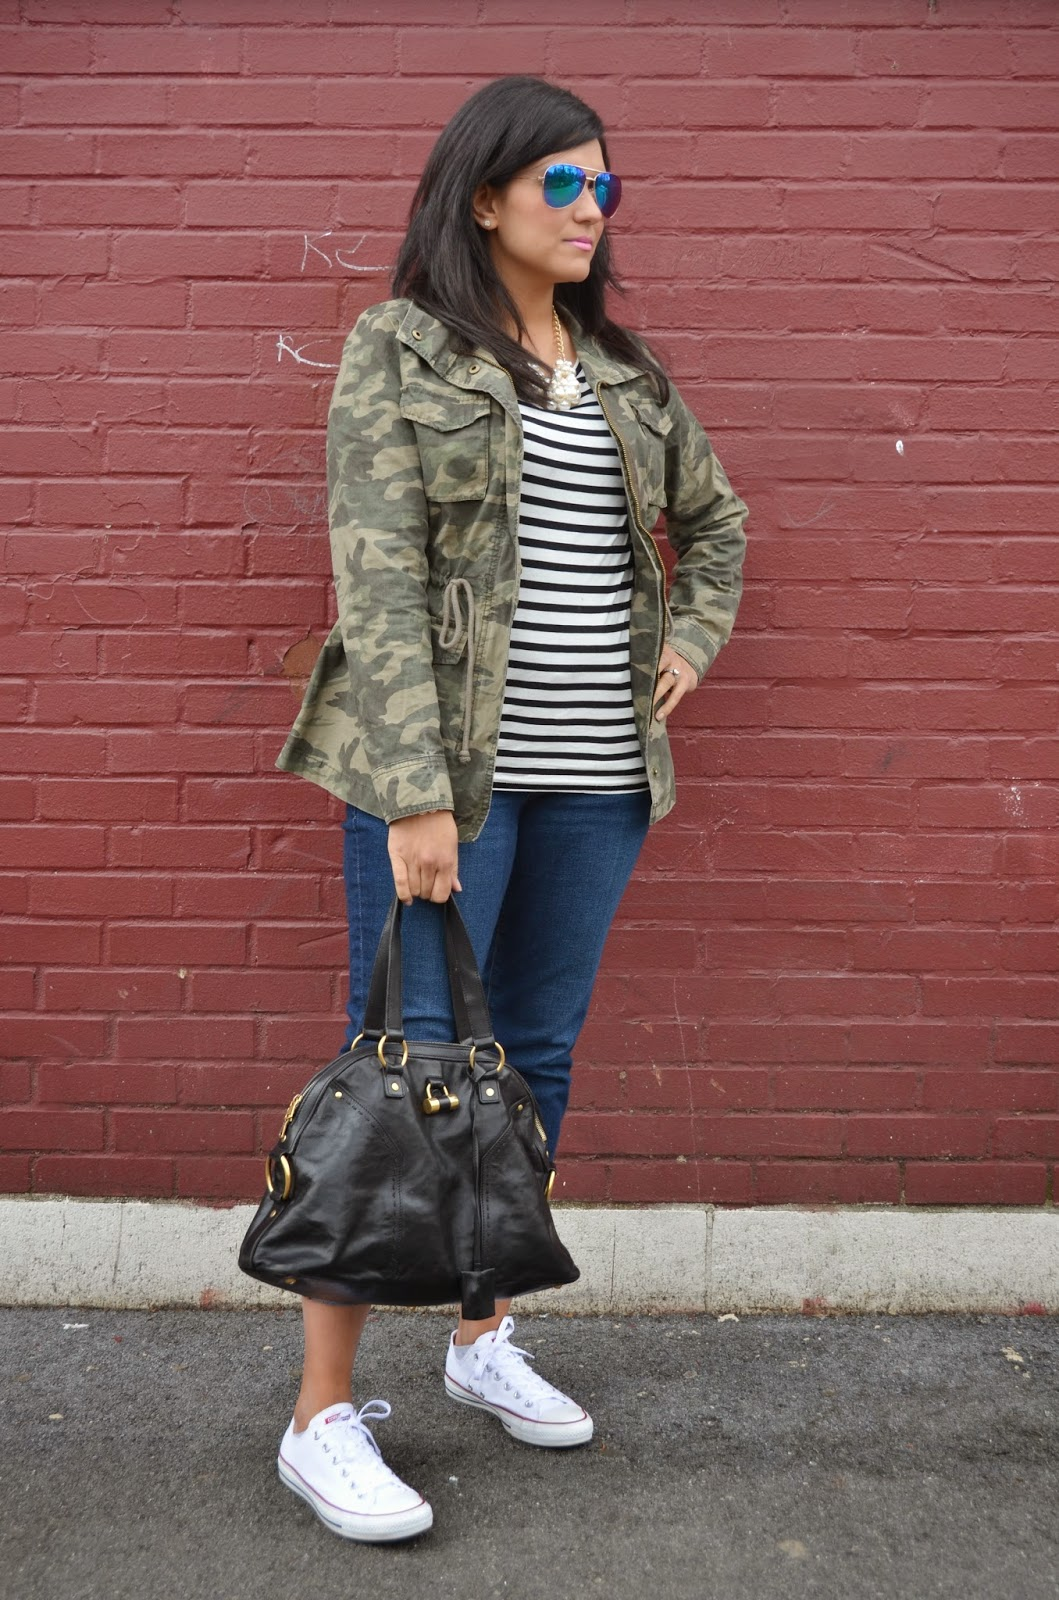 040ac29c8dd Top  H M Jacket  Old Navy Jeans  Old Navy Sneakers  Converse Necklace   Forever 21. Bracelets  Forever 21 (old